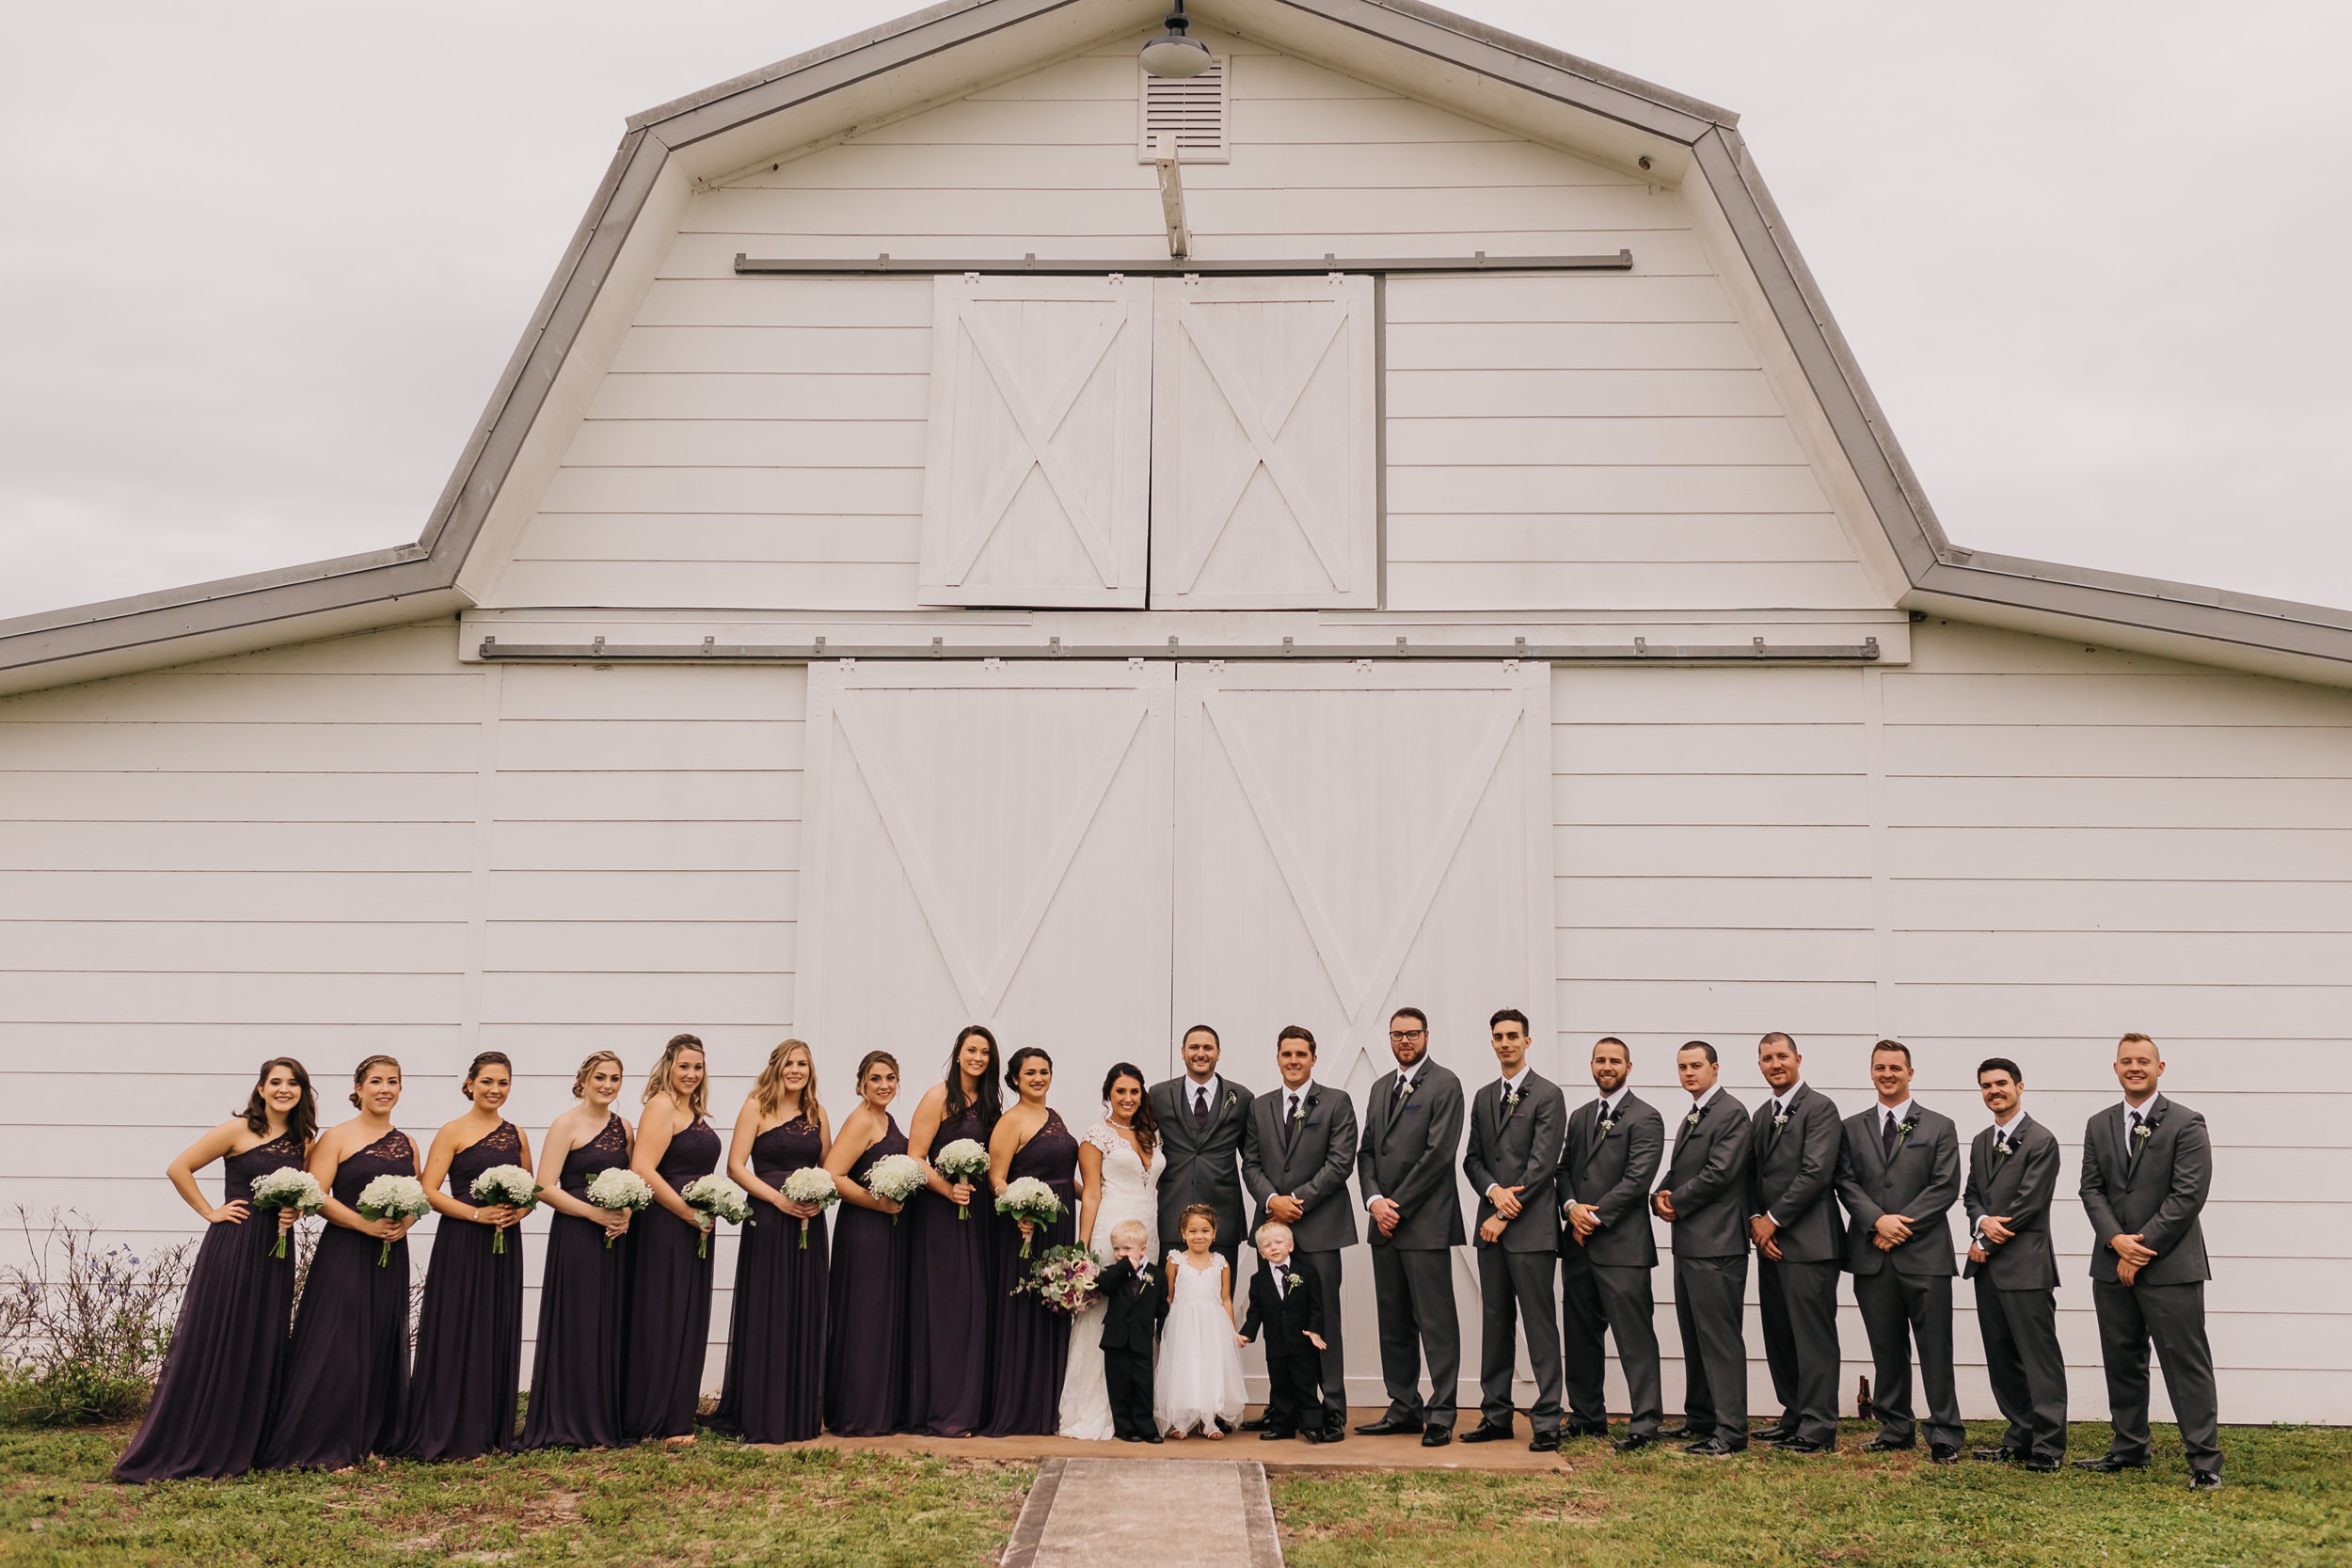 2017.10.28 Lana and Chadd Ragone Sterling Stables Cocoa Wedding (513 of 986).jpg